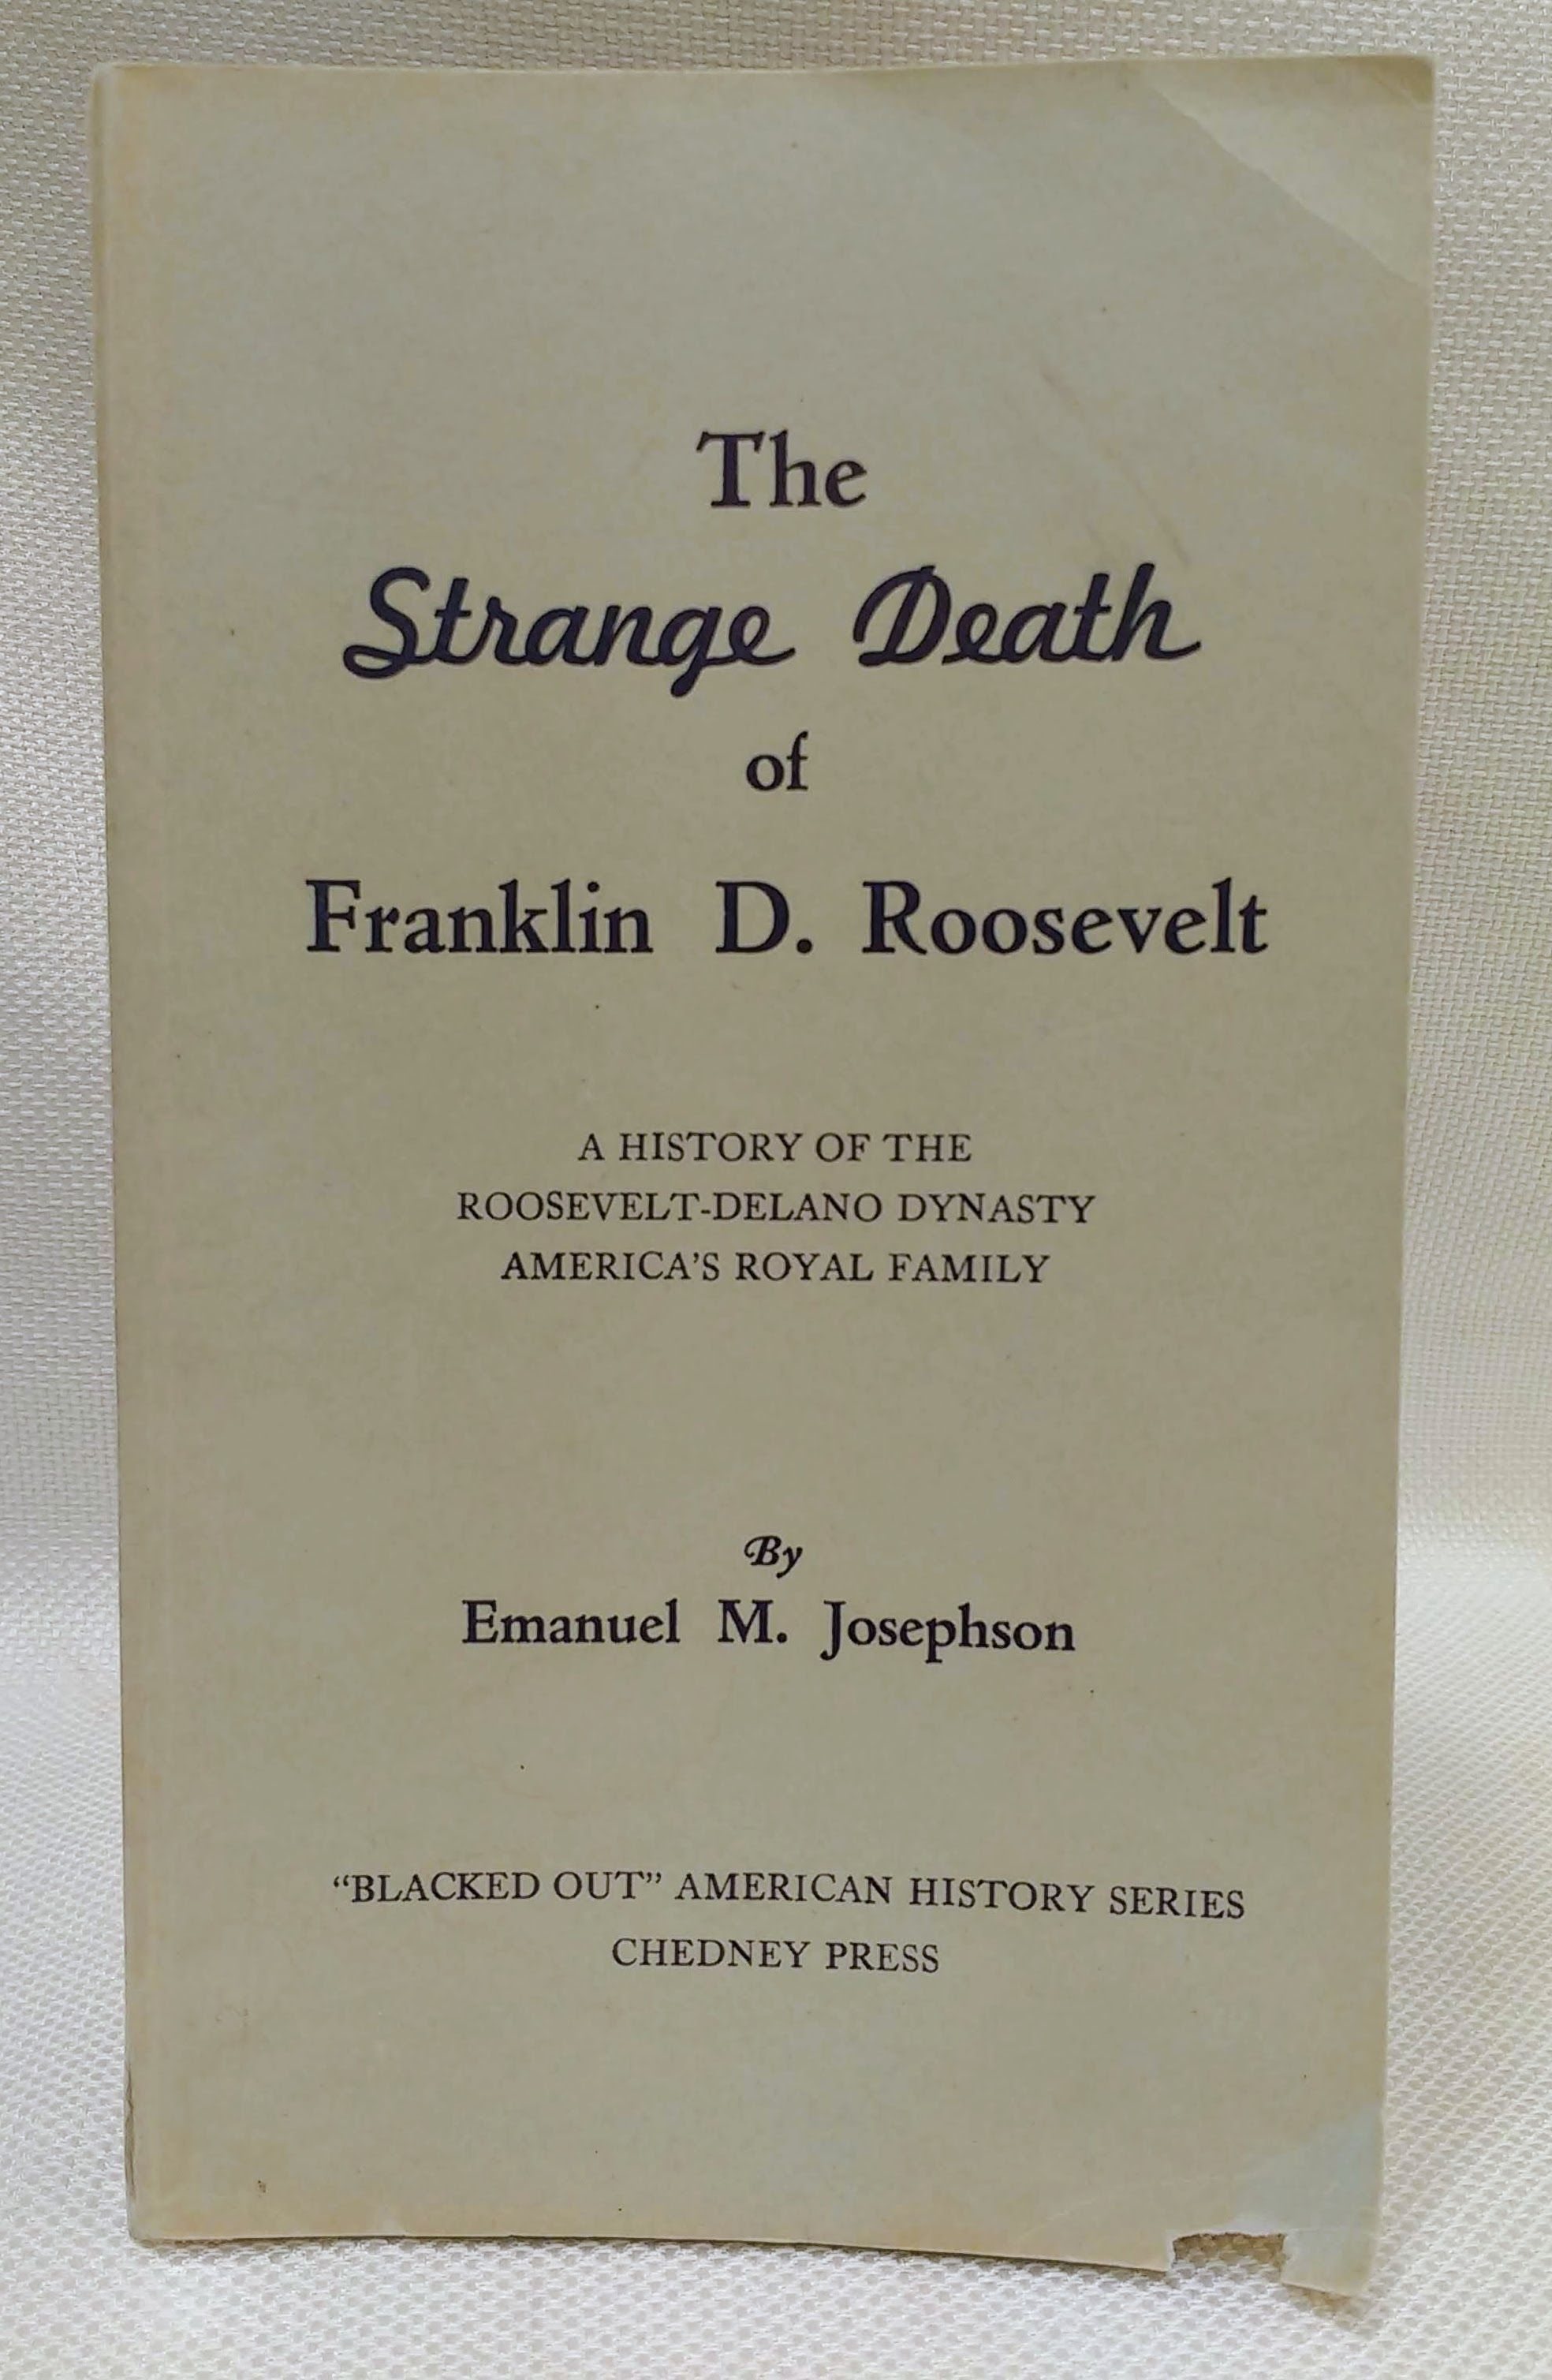 """The Strange Death of Franklin D. Roosevelt: A History of the Roosevelt-Delano Dynasty, America's Royal Family (""""Blacked Out"""" American History Series), Emanuel M. Josephson"""